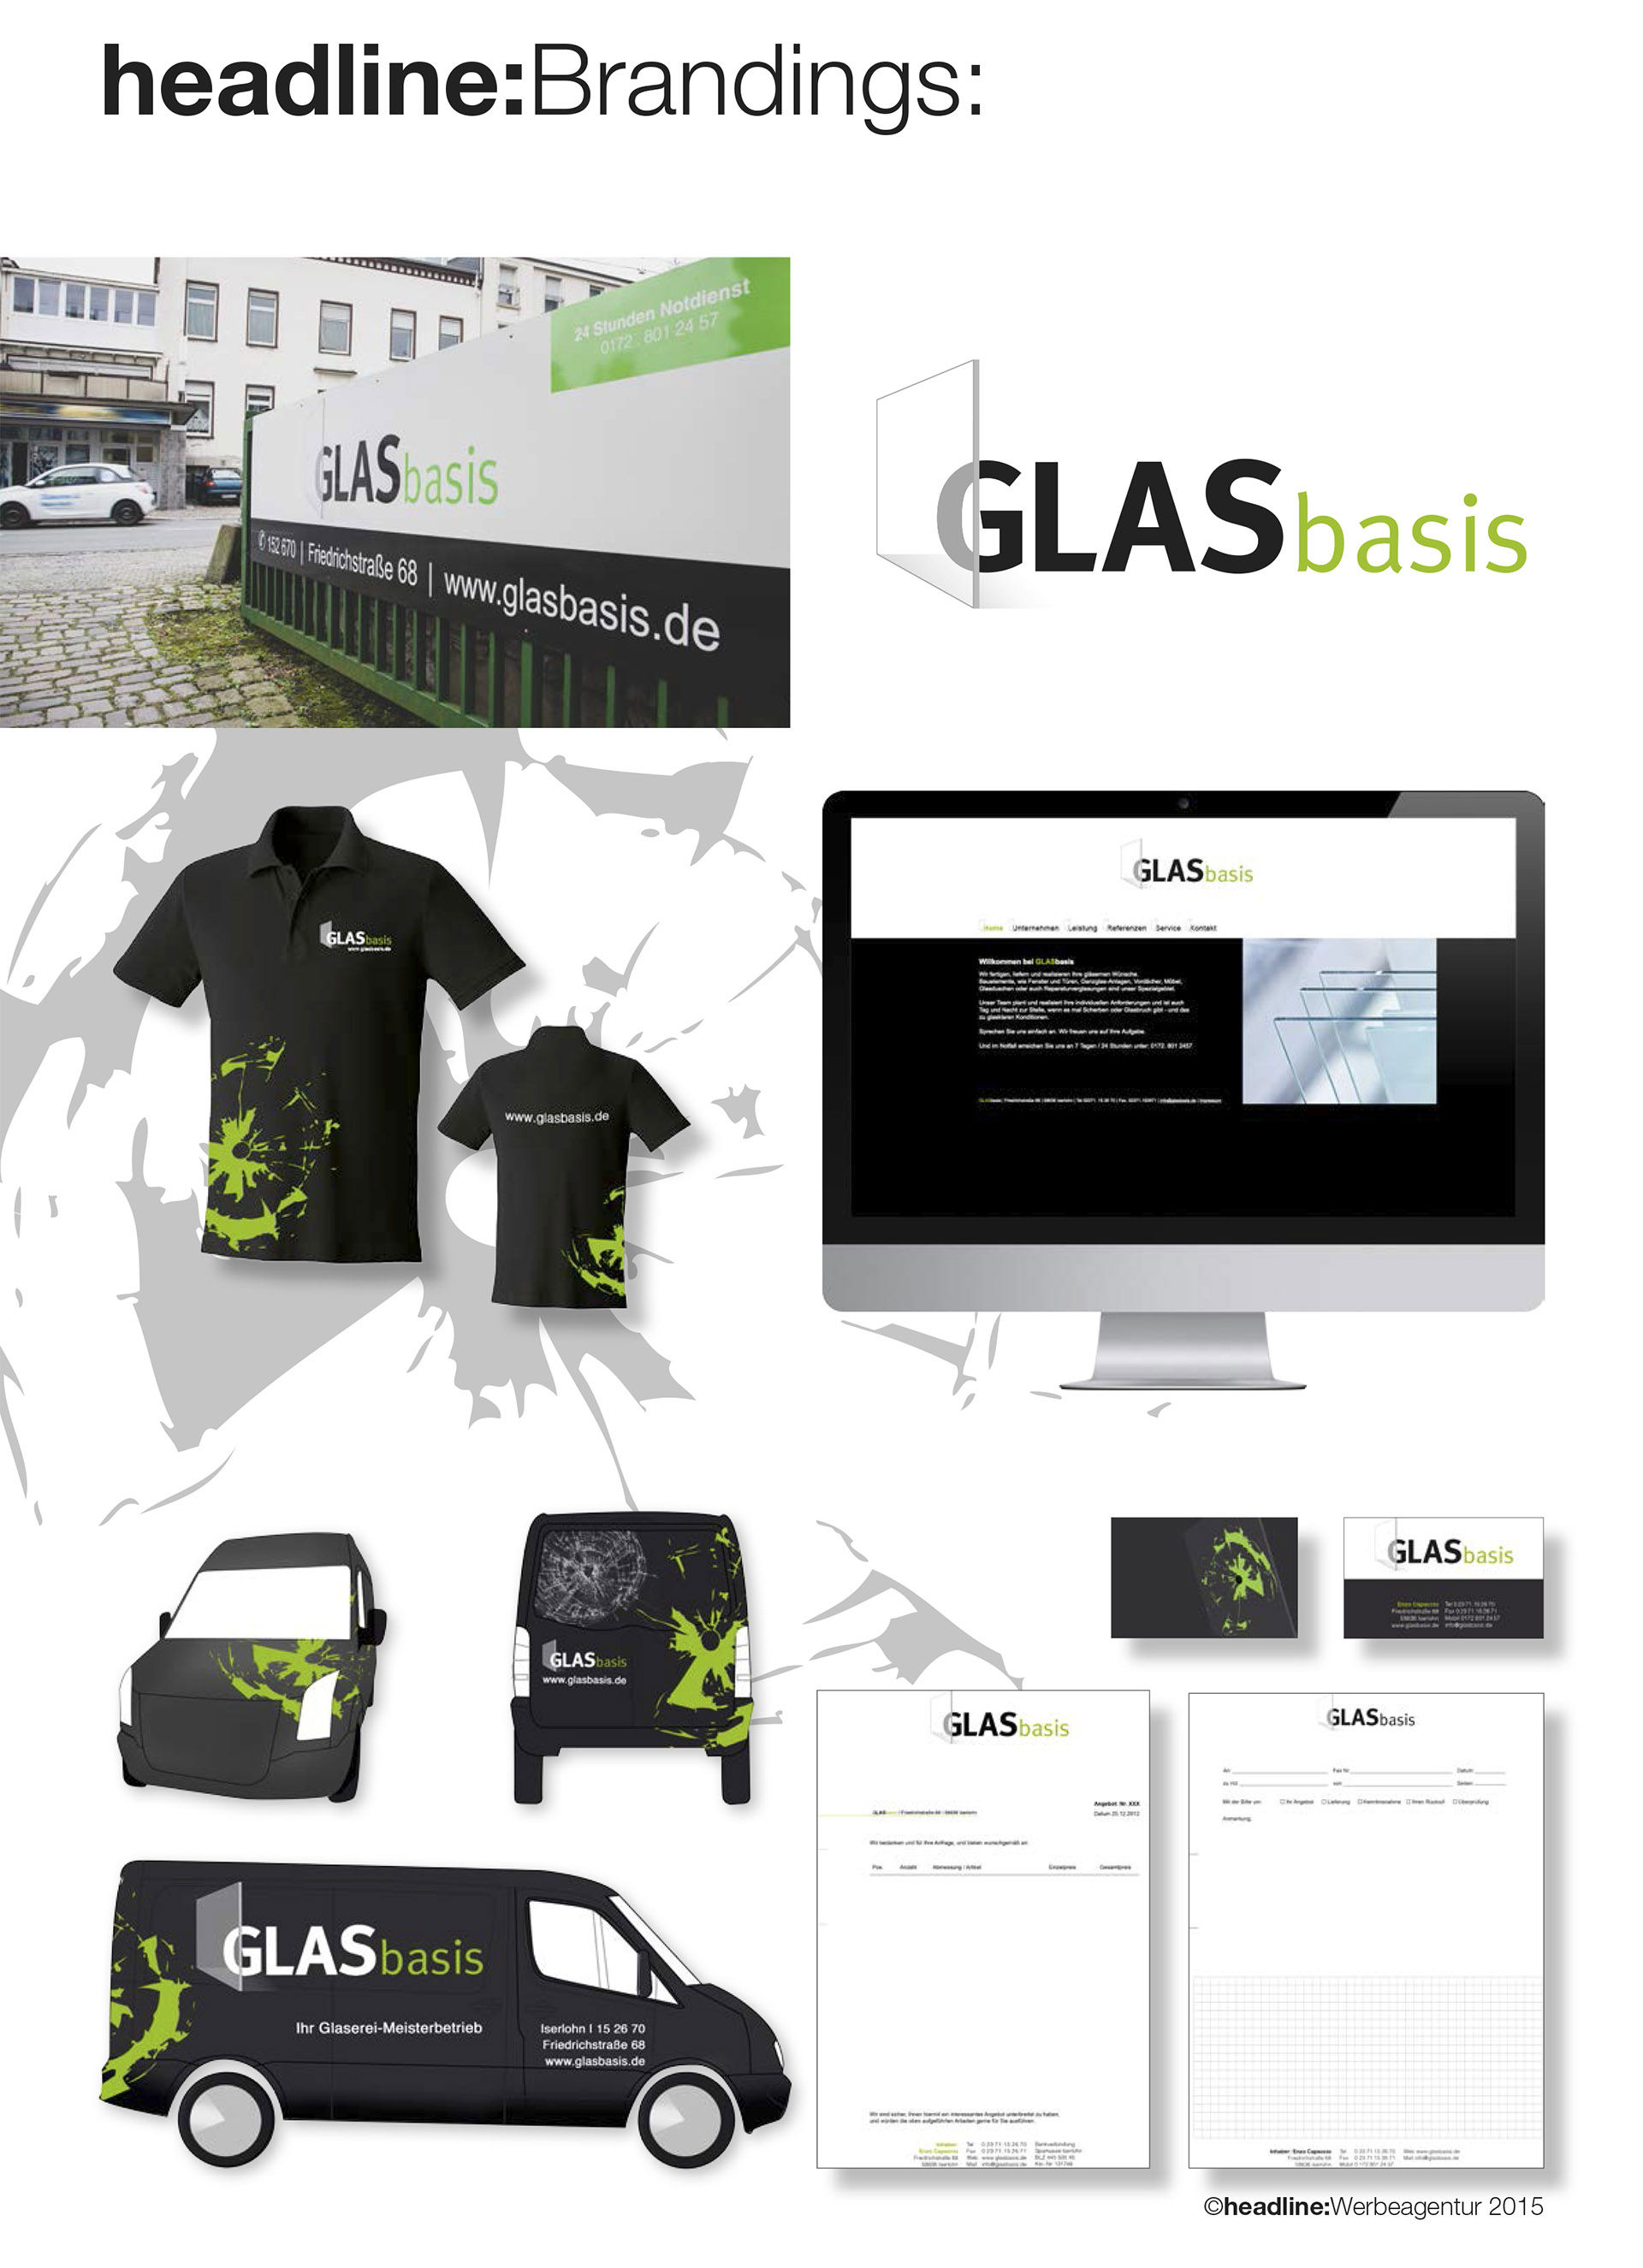 Das Glasbasis Branding by headline